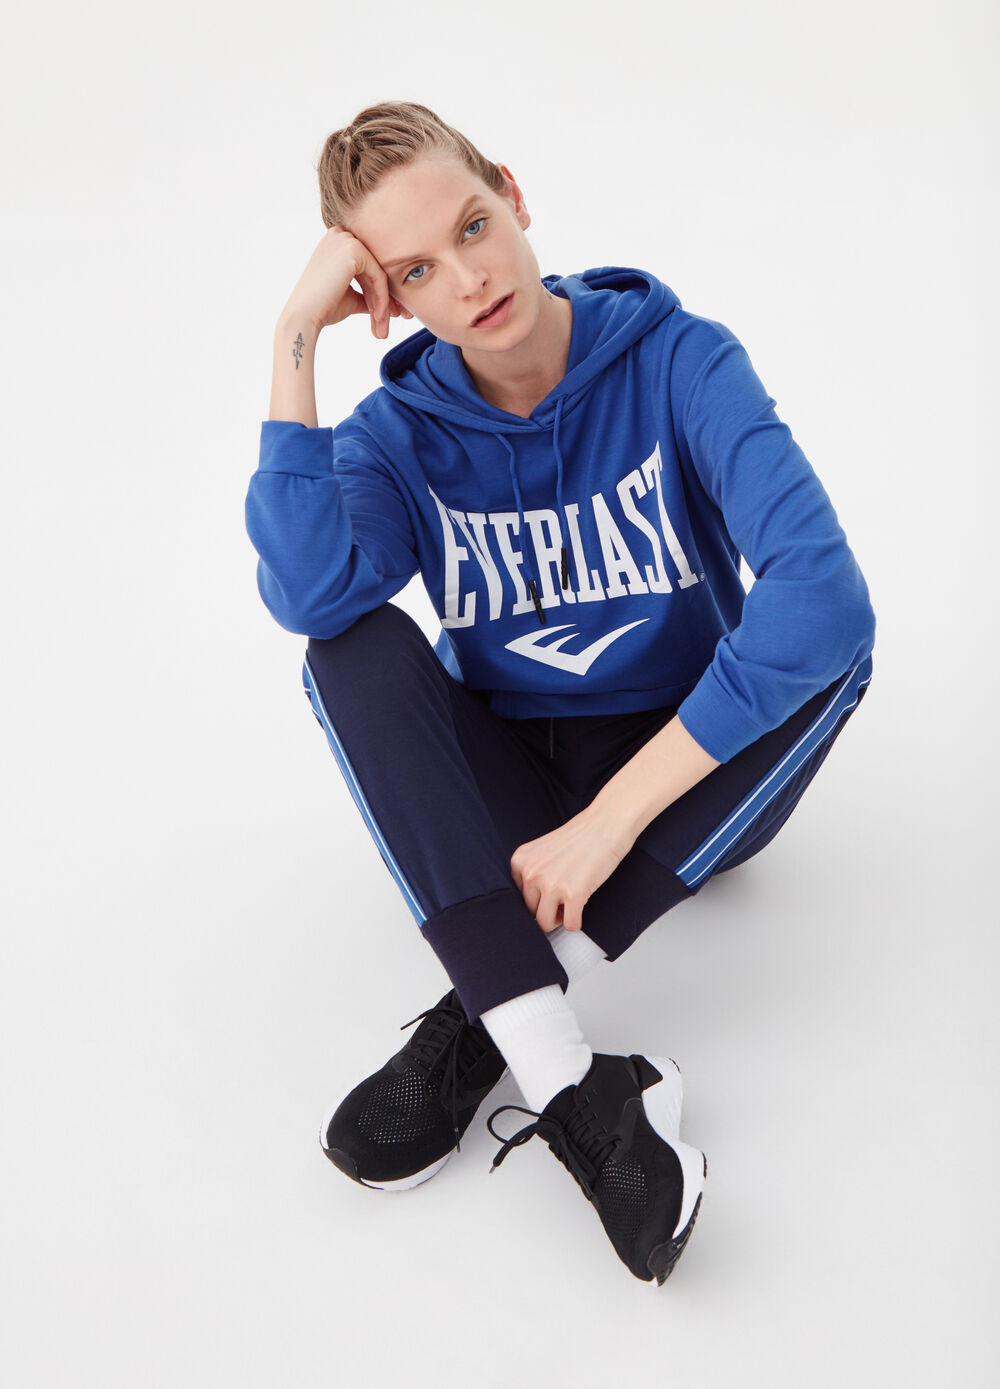 Everlast sweatshirt with pouch pocket